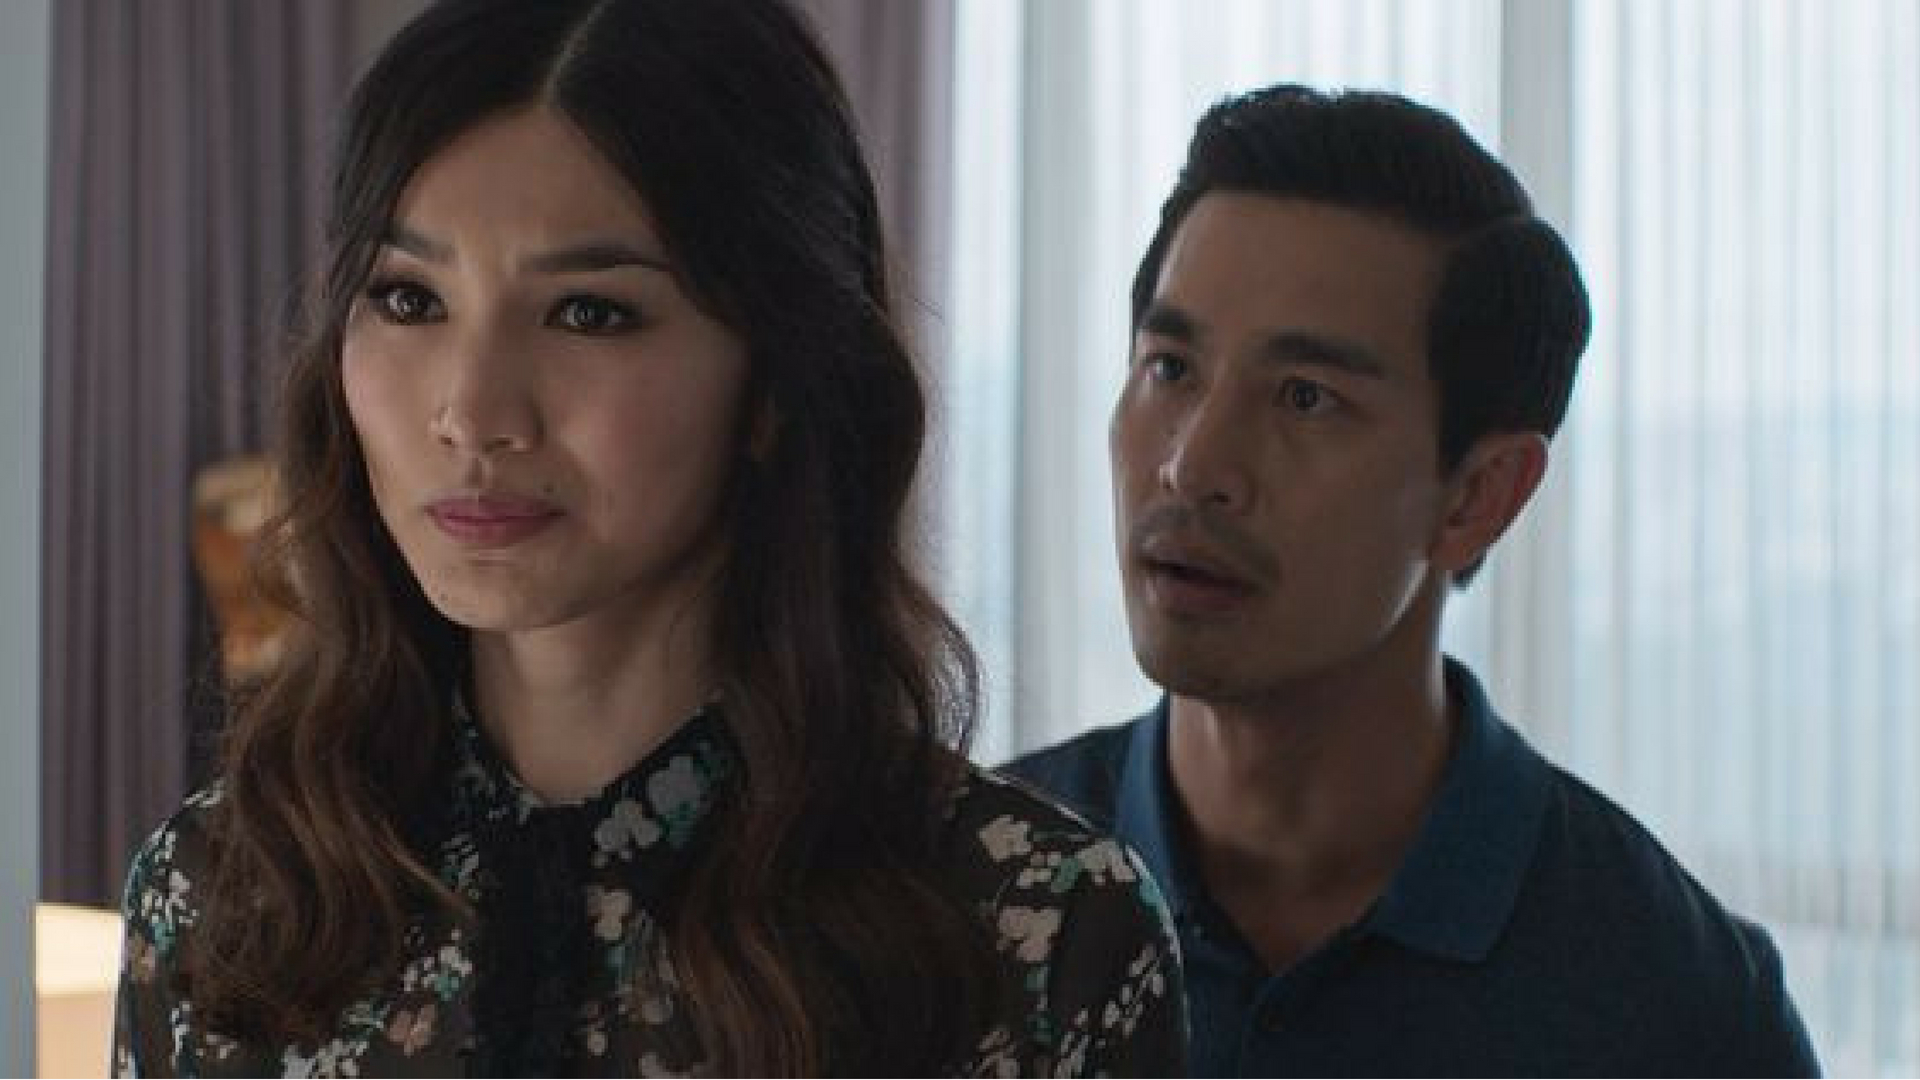 A Crazy Rich Asians Sequel Is in the Works and It Will Feature a New Love Story